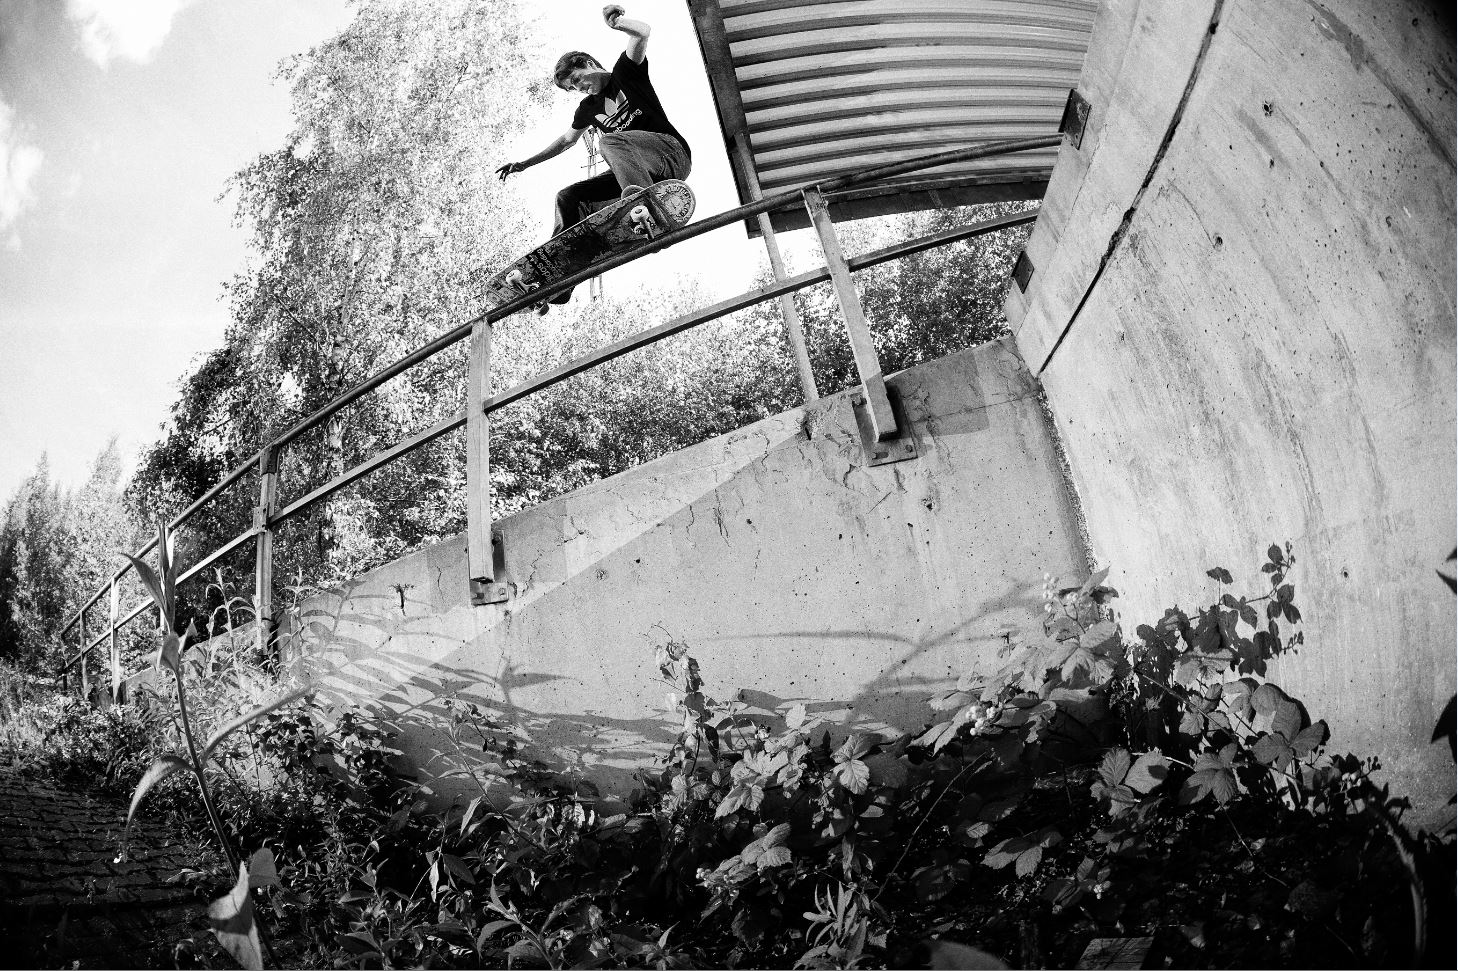 Sascha Scharf - BS 50-50 Pop Over